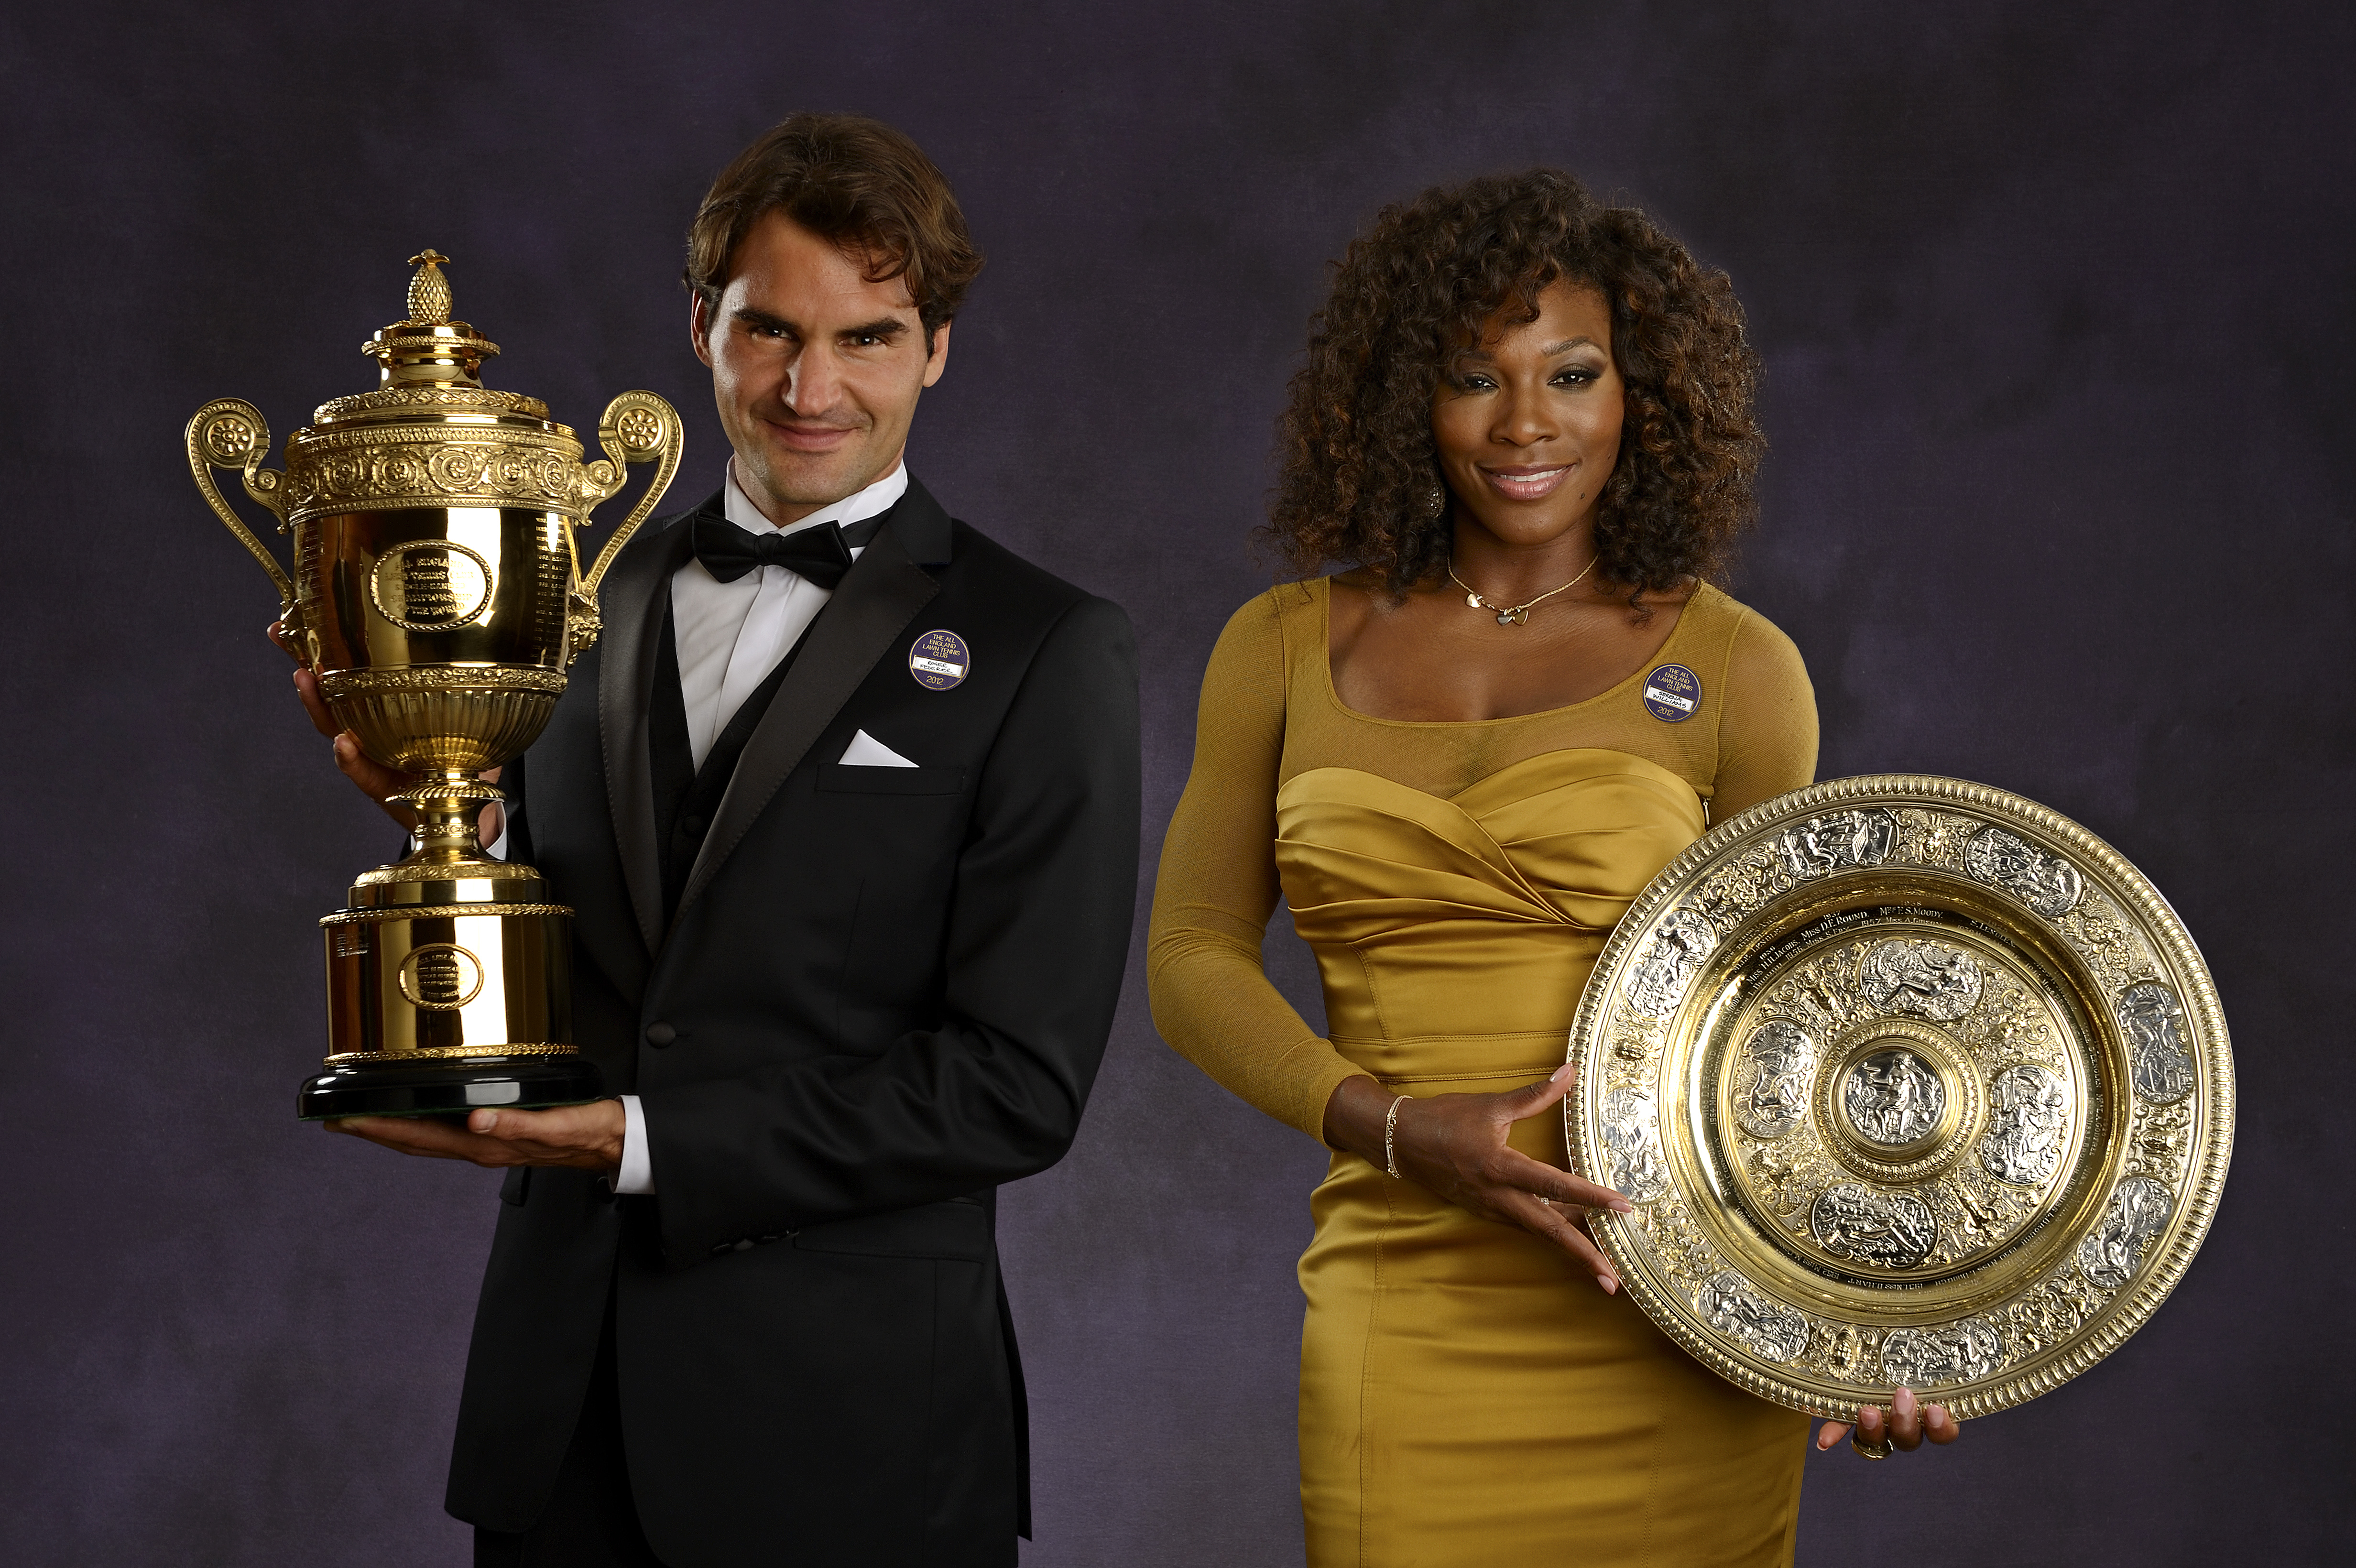 Wimbledon Singles Champions Serena Williams of the USA and Roger Federer of Switzerland pose for a portrait at the Wimbledon Championships 2012 Champions' Dinner (Source: Getty Images)